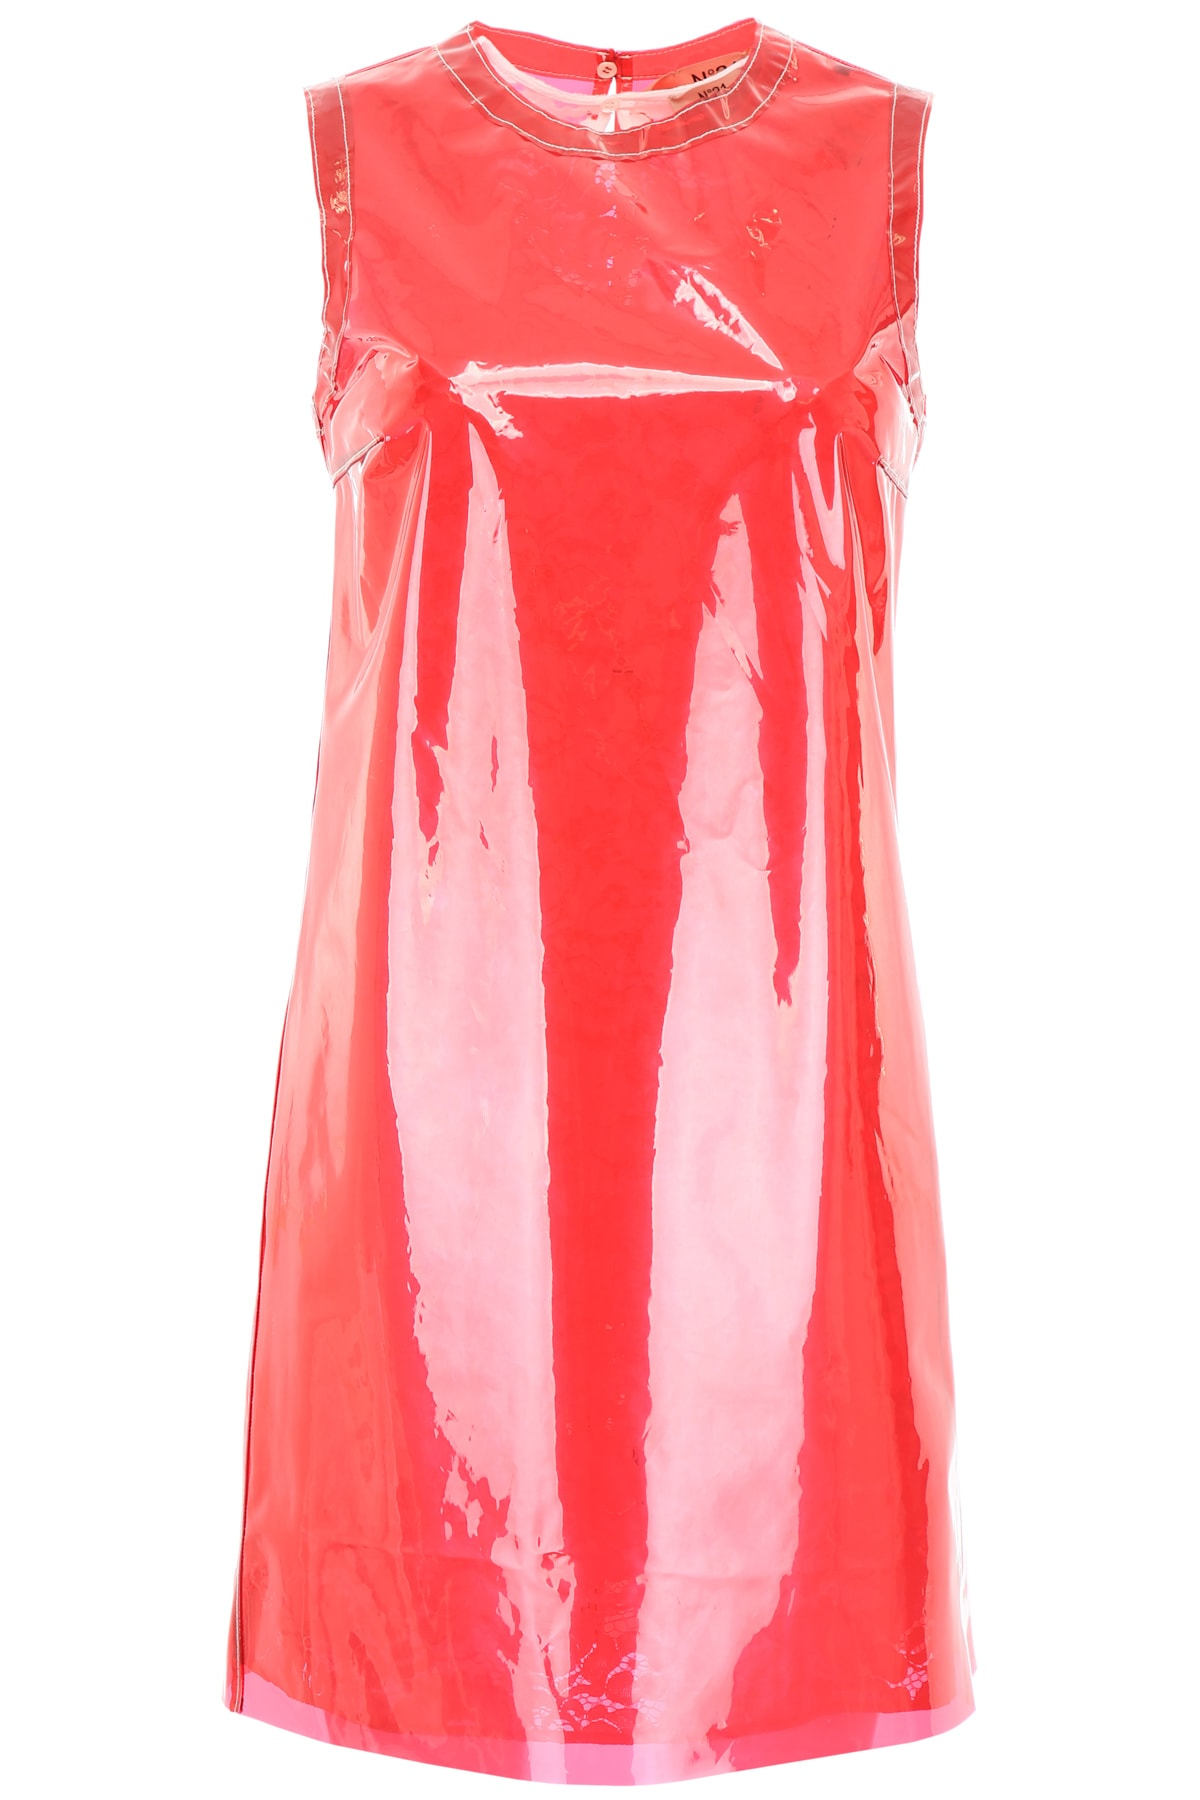 Buy N.21 Pvc And Lace Dress online, shop N.21 with free shipping